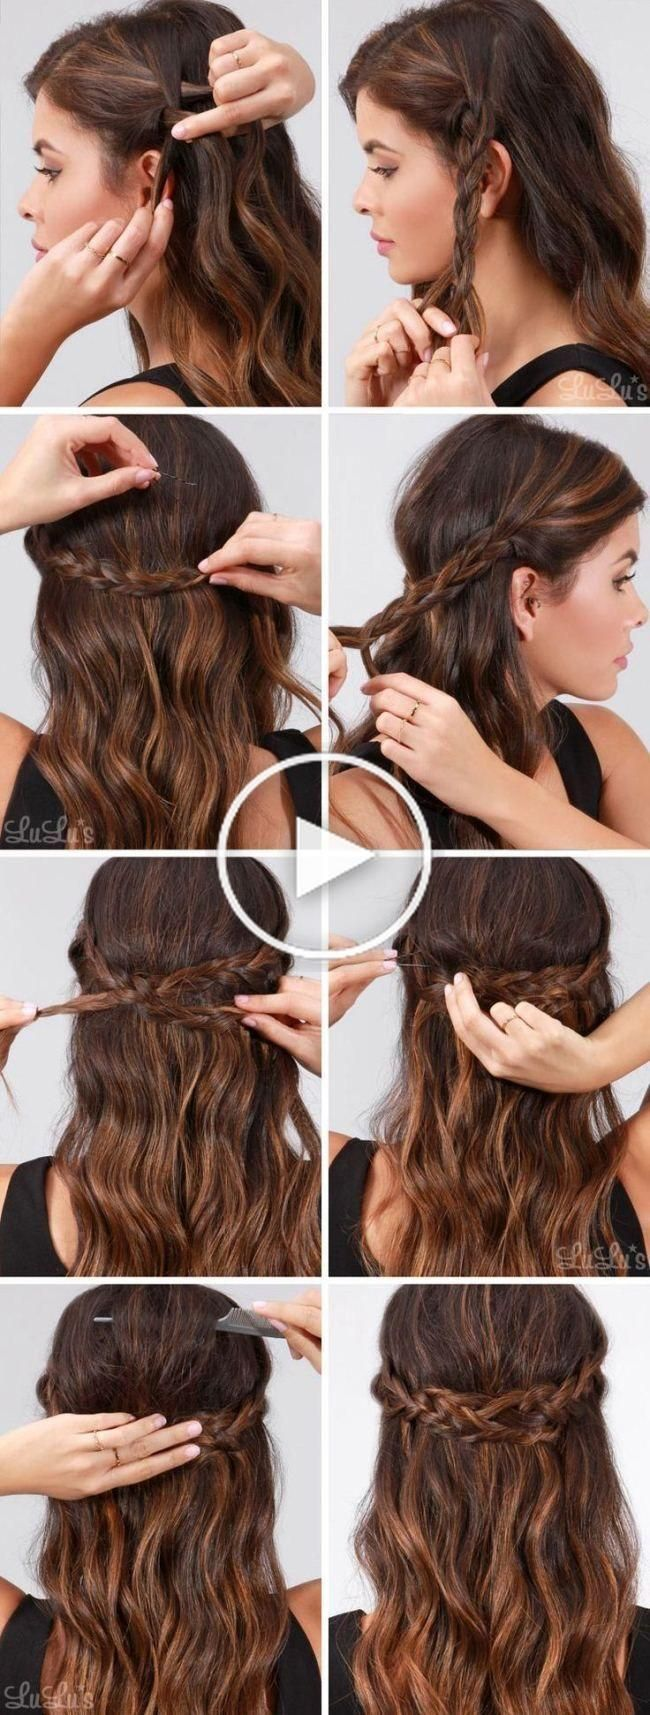 Quick simple formal party hairstyles for long hair DIY ideas 2018 Flm Reise textile pants 2.0 ...